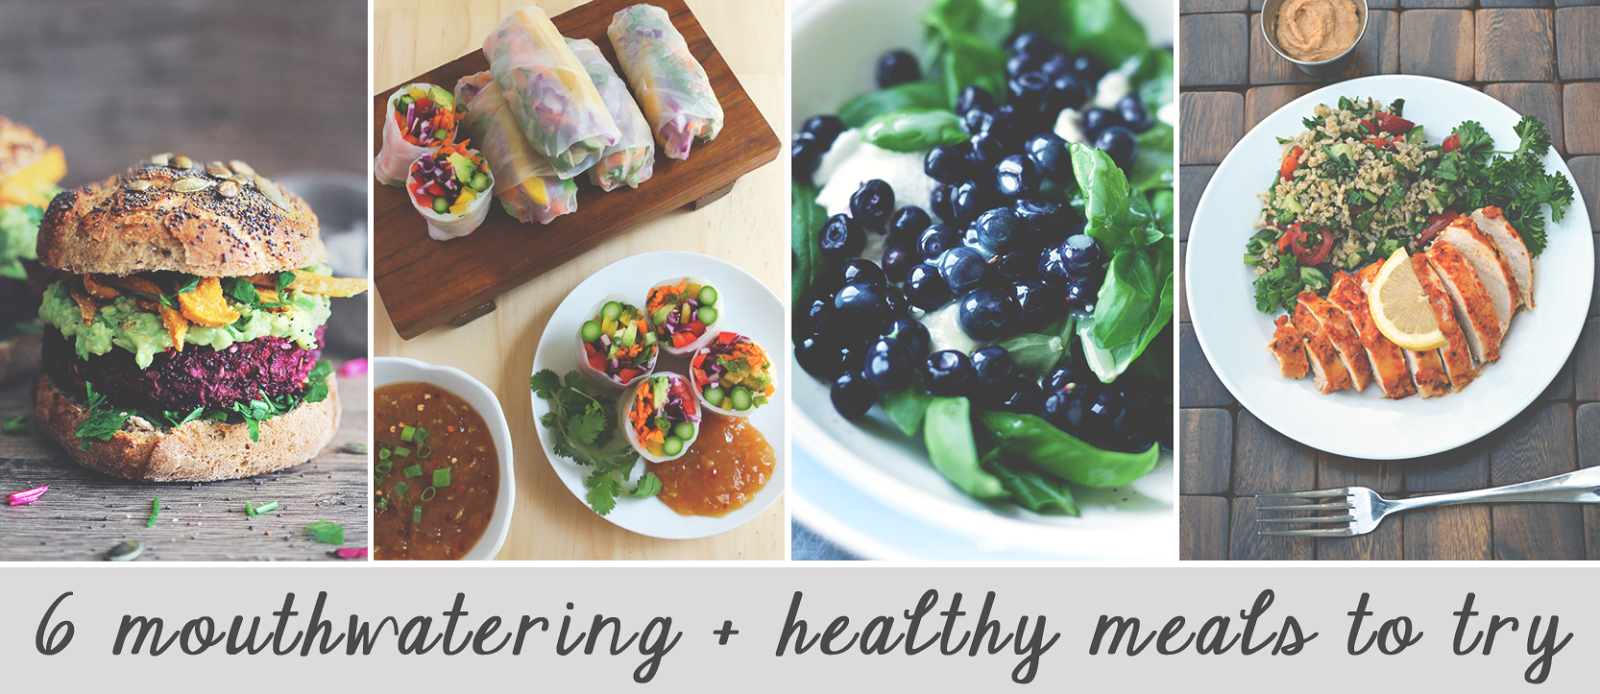 healthy meals to try, eating healthy, healthy food ideas